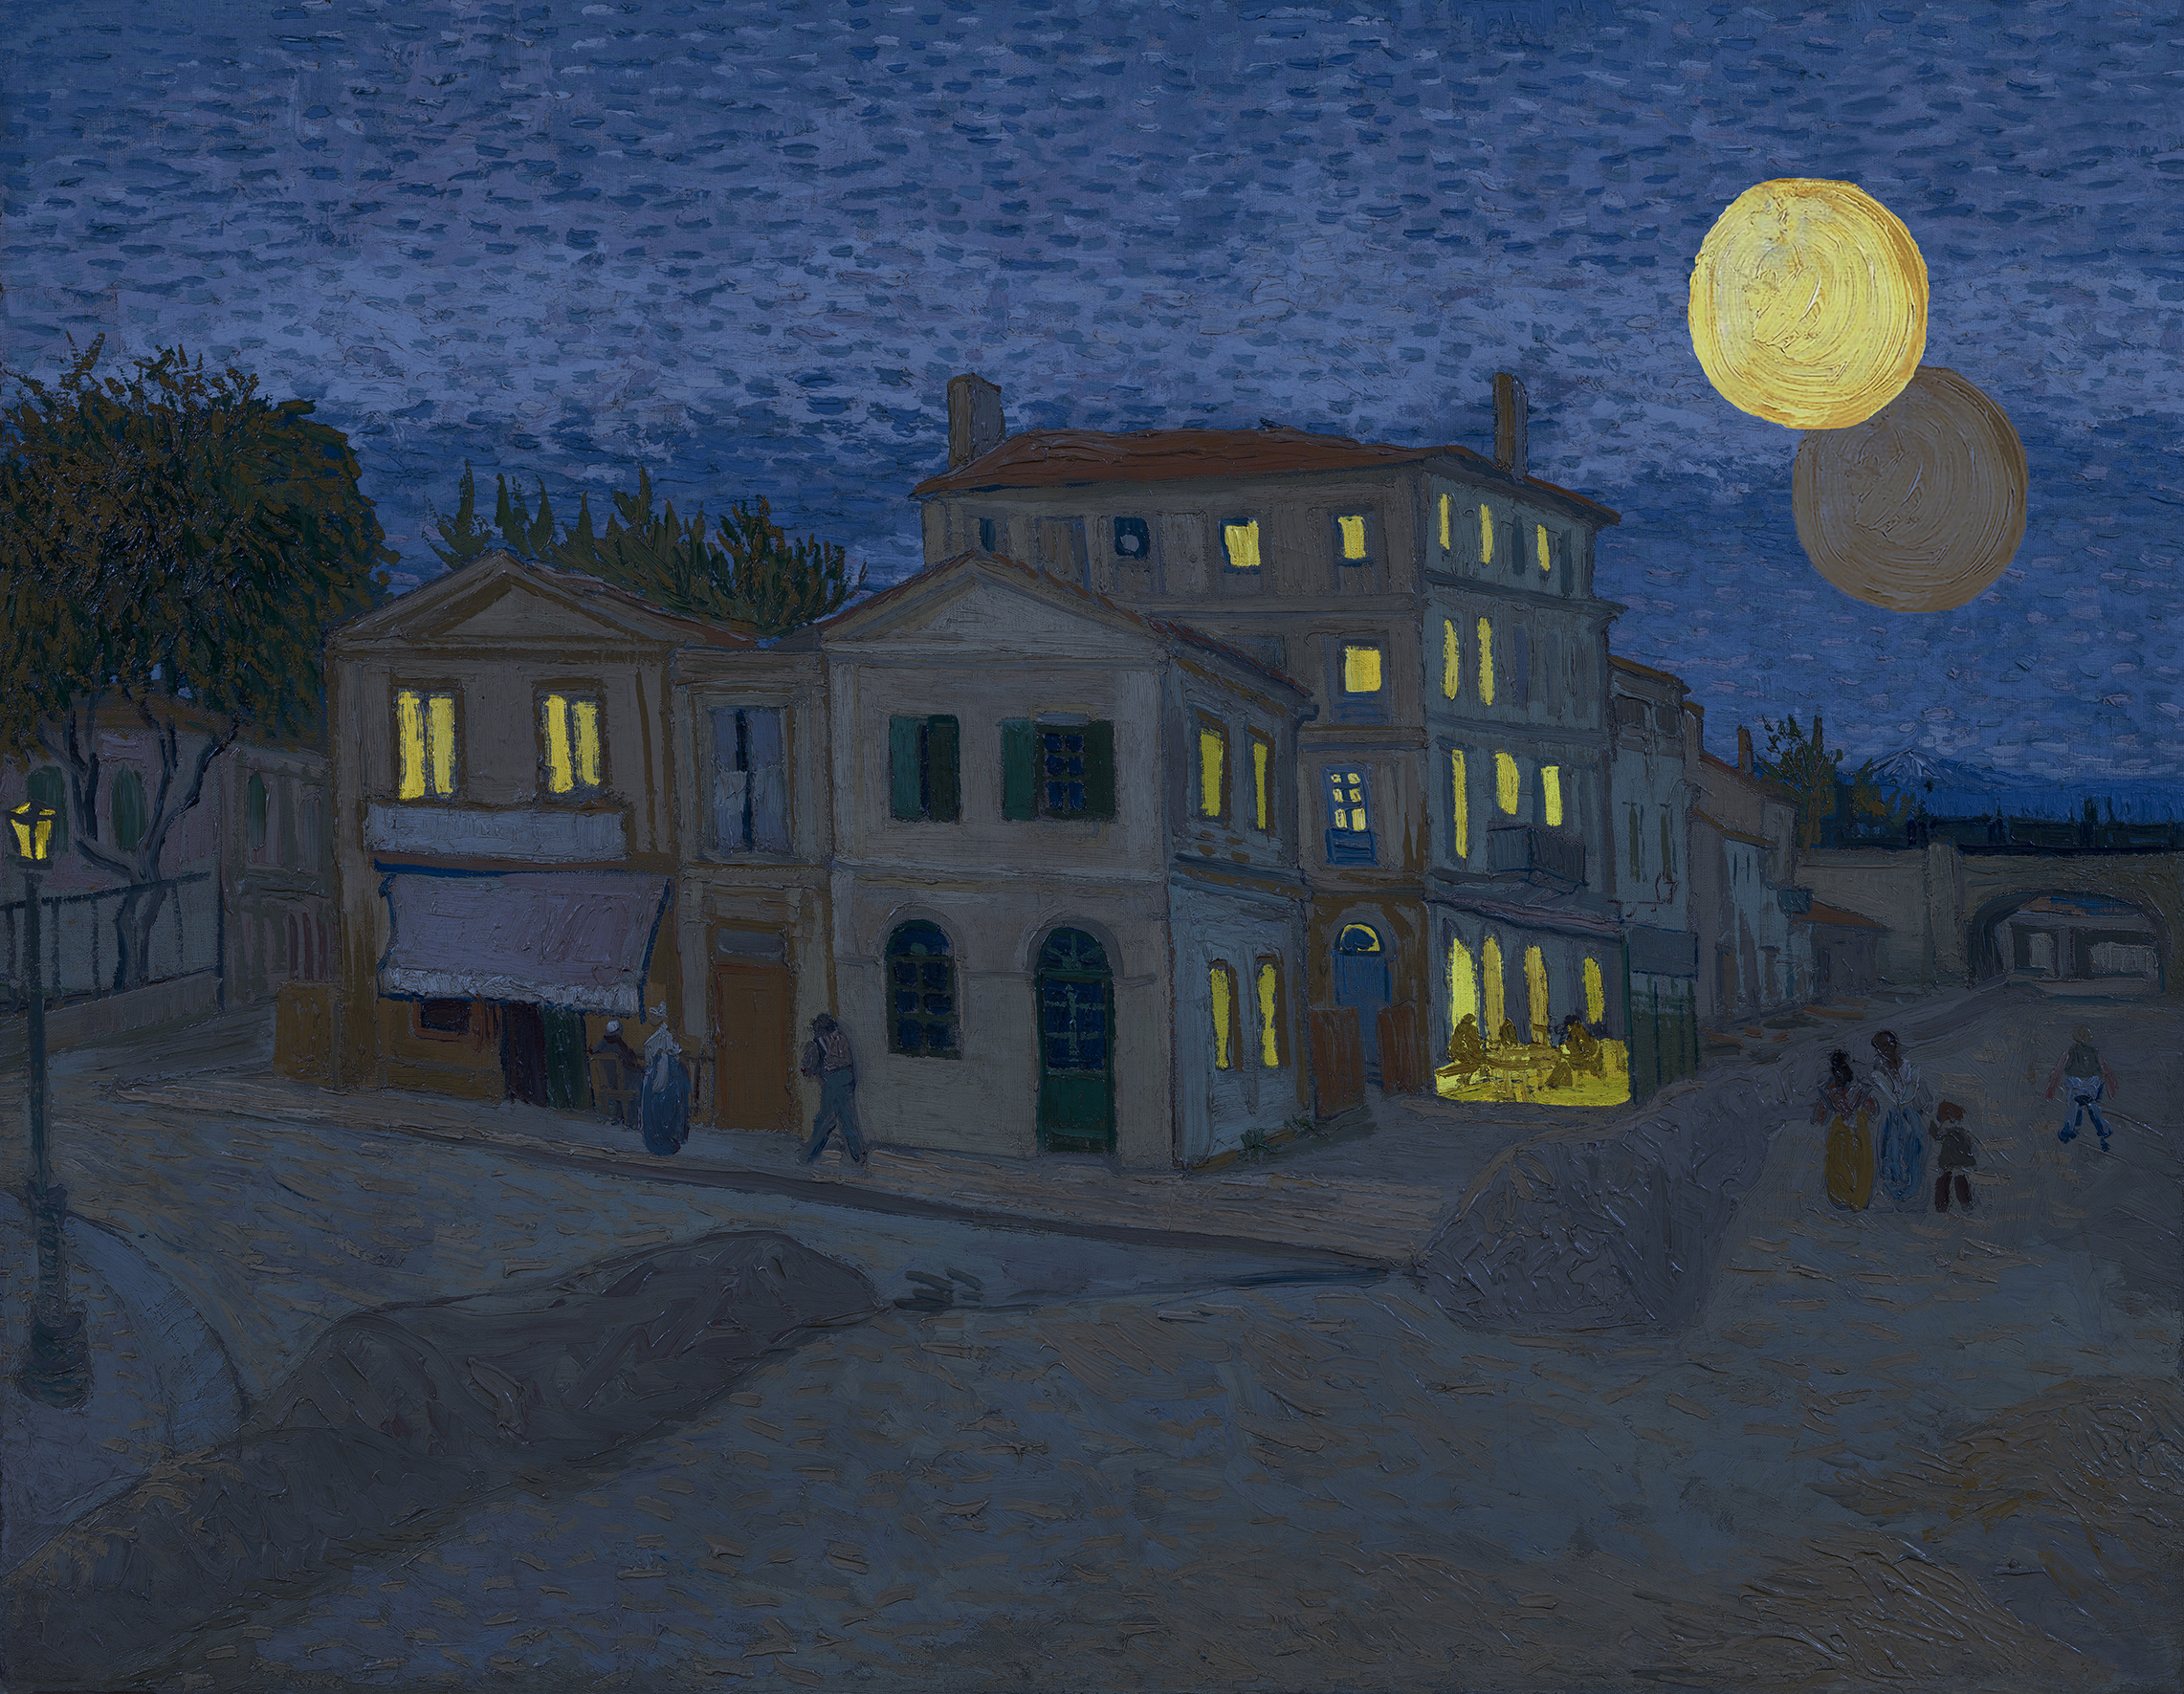 van Gogh's famed yellow house at sunset with criss-crossing setting sun and rising moon